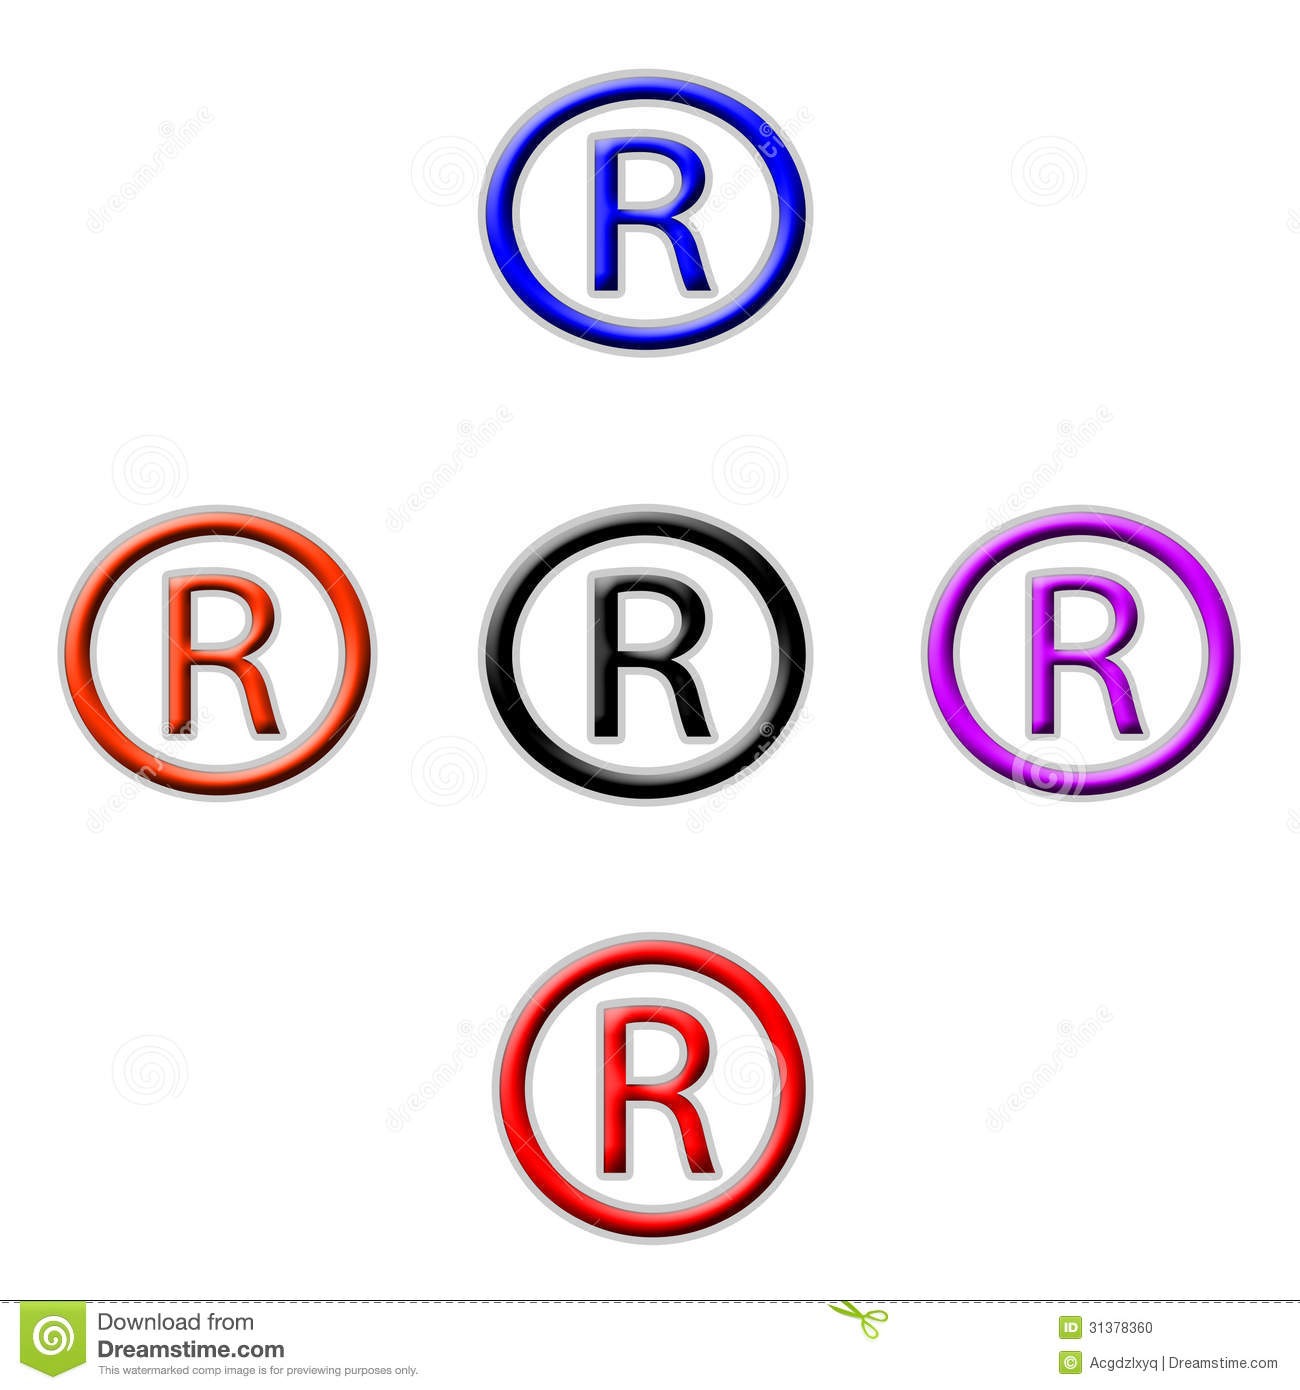 Symbol Registered Stock Photo Image Of Abstract Design 31378360